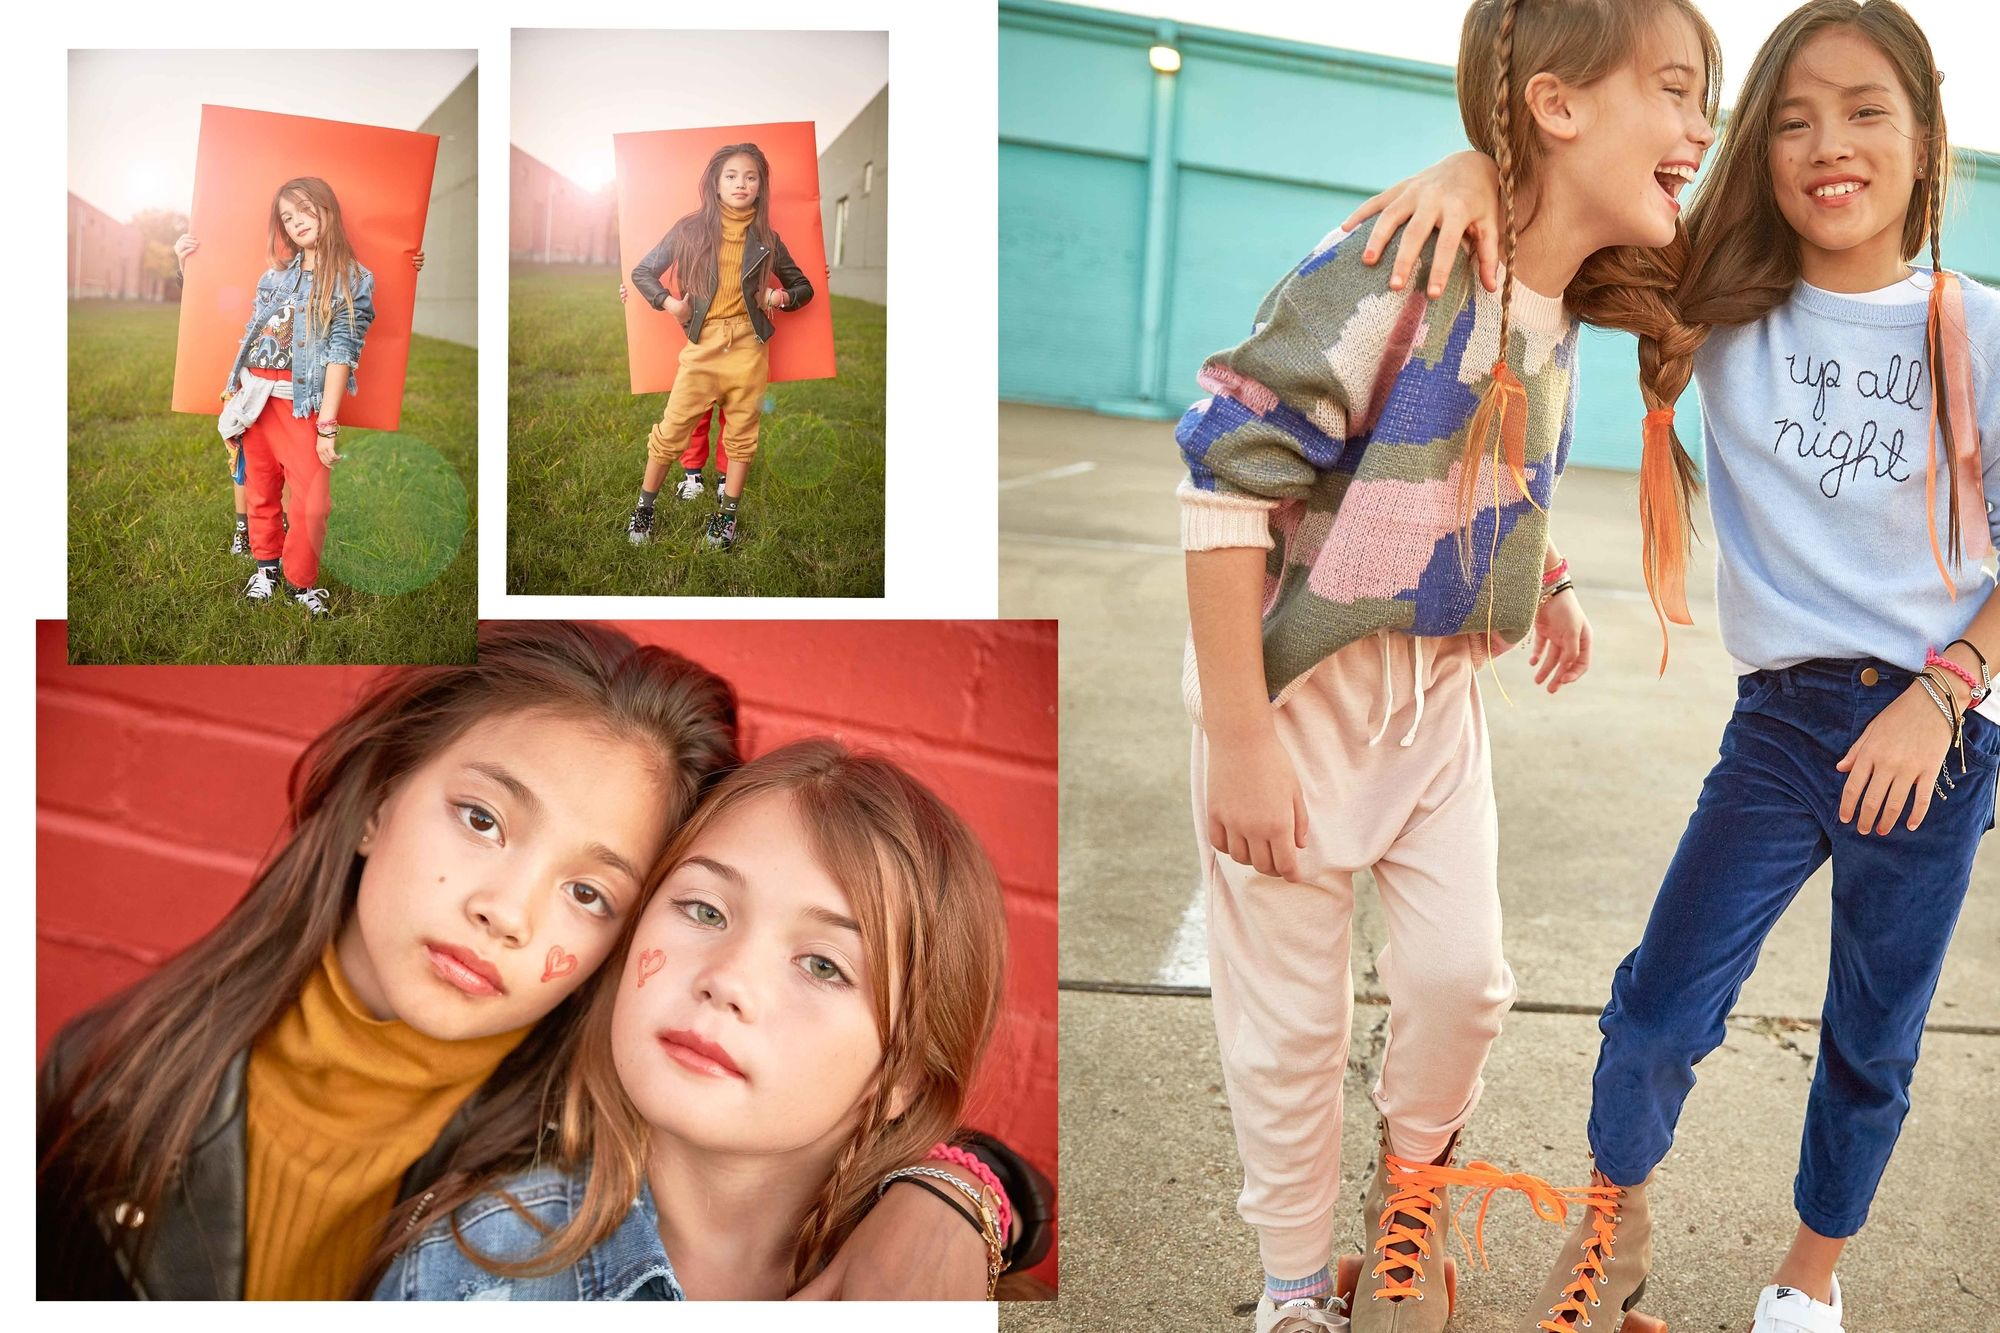 ALYSSA PIZER MANAGEMENT: BFFs by Cindy James